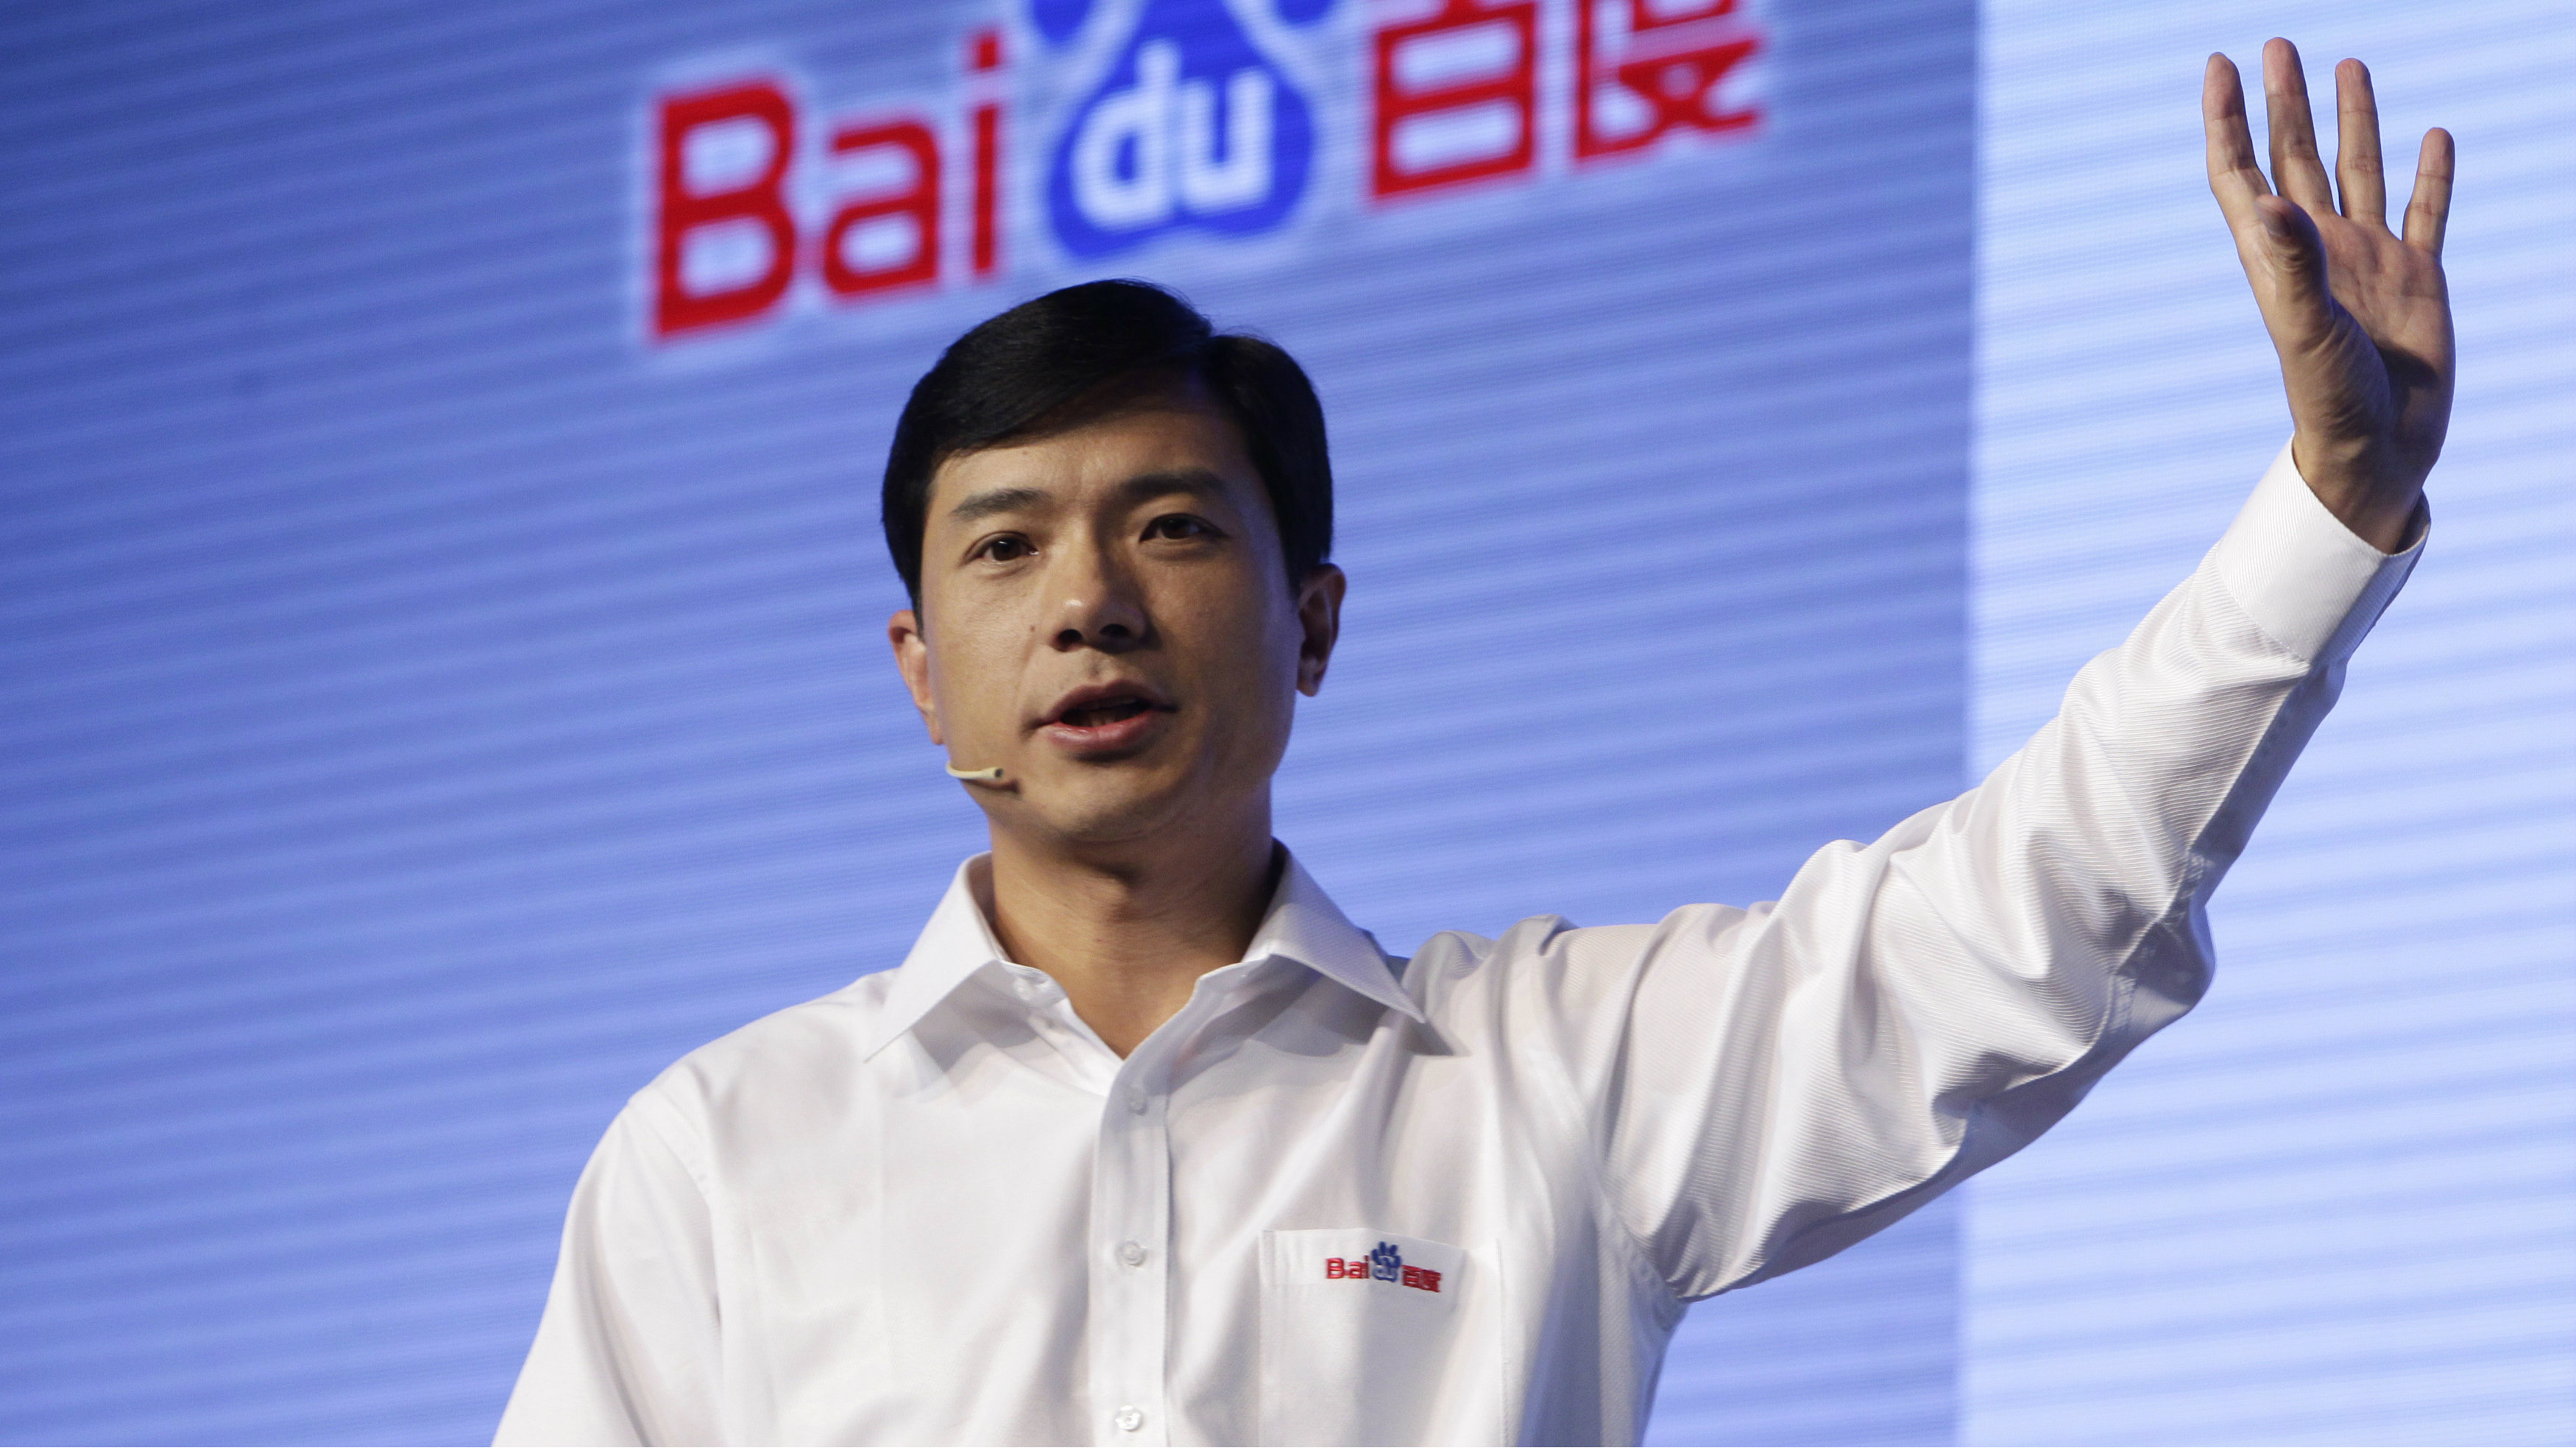 Robin Li, founder and chief executive of Chinese search engine Baidu, delivers a speech at the Baidu 2011 technology innovation conference in Beijing September 2, 2011. China's top search engine Baidu Inc launched a new mobile application system on Friday, seeking to bolster its presence in the mobile web as competitors including Alibaba Group increase their mobile offerings.